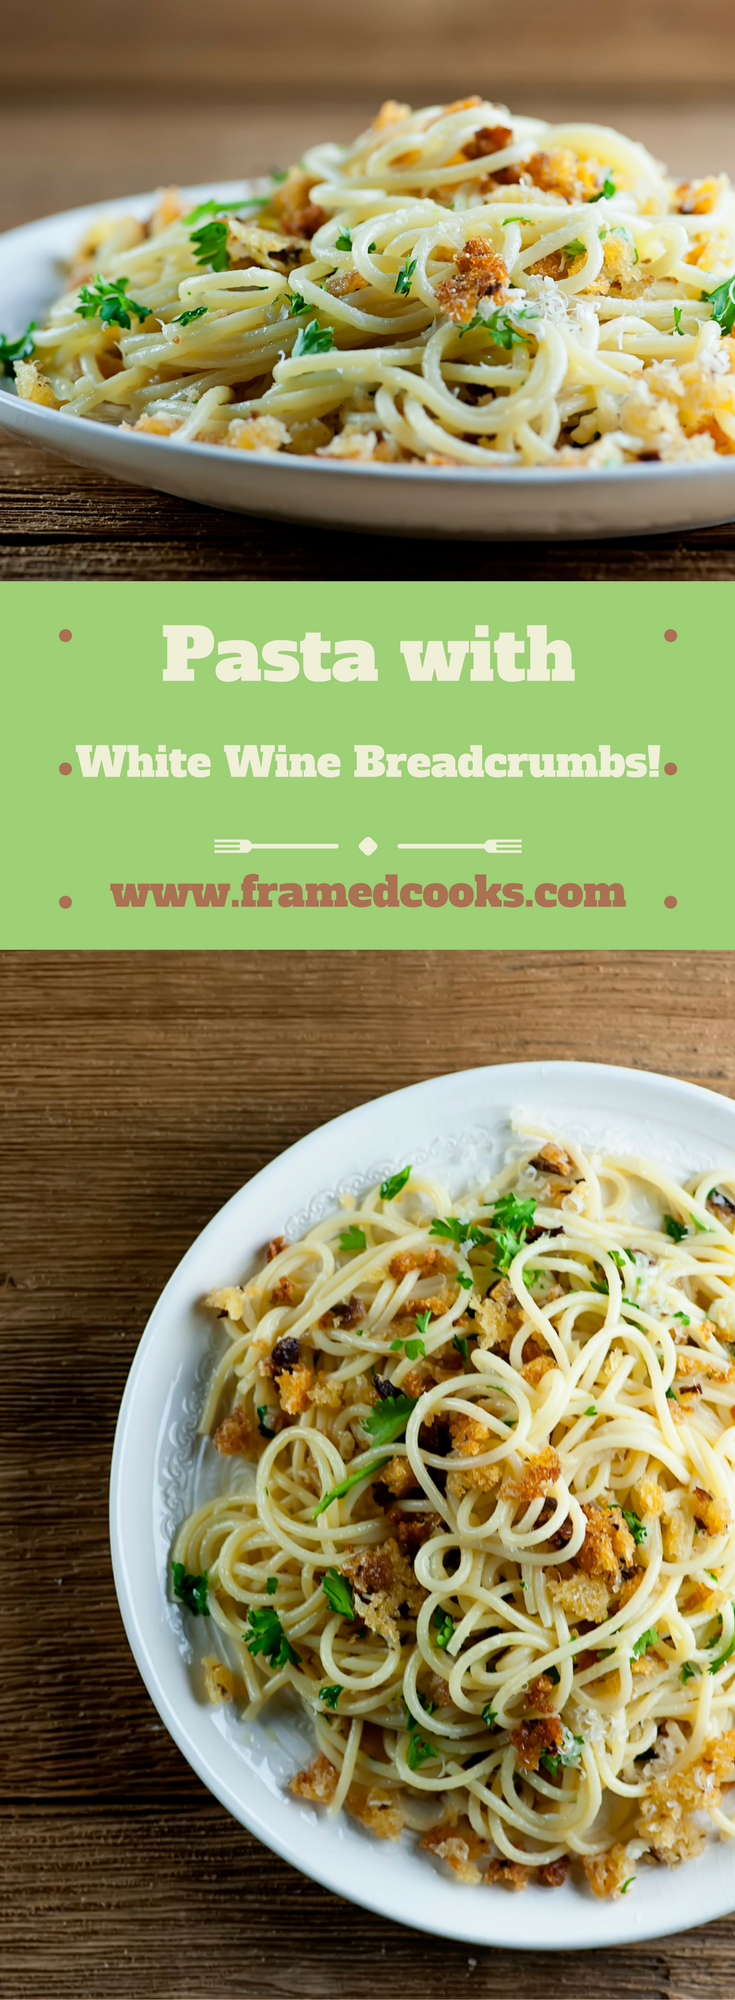 It's amazing what some garlic and white wine breadcrumbs can do for spaghetti...welcome to your favorite new comfort food recipe!